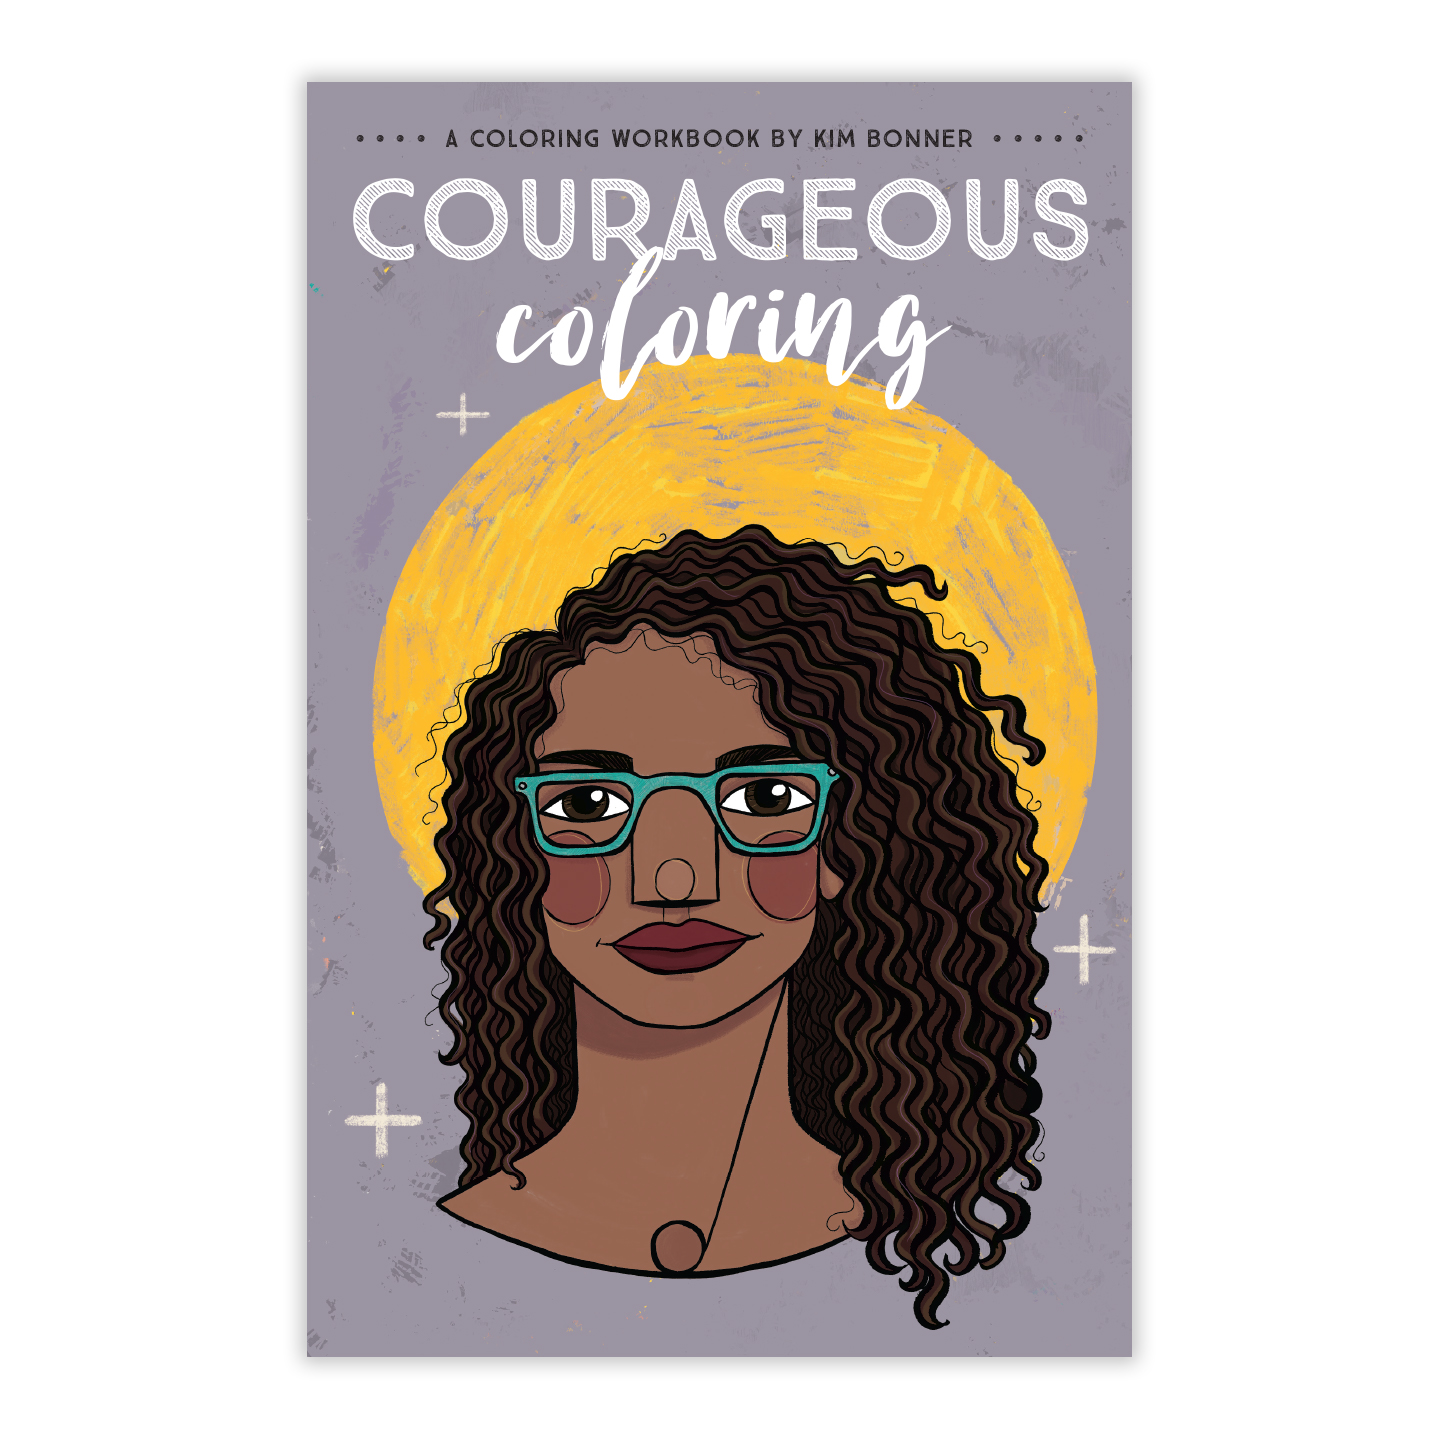 The cover of the Courageous Coloring Workbook, Volume 2